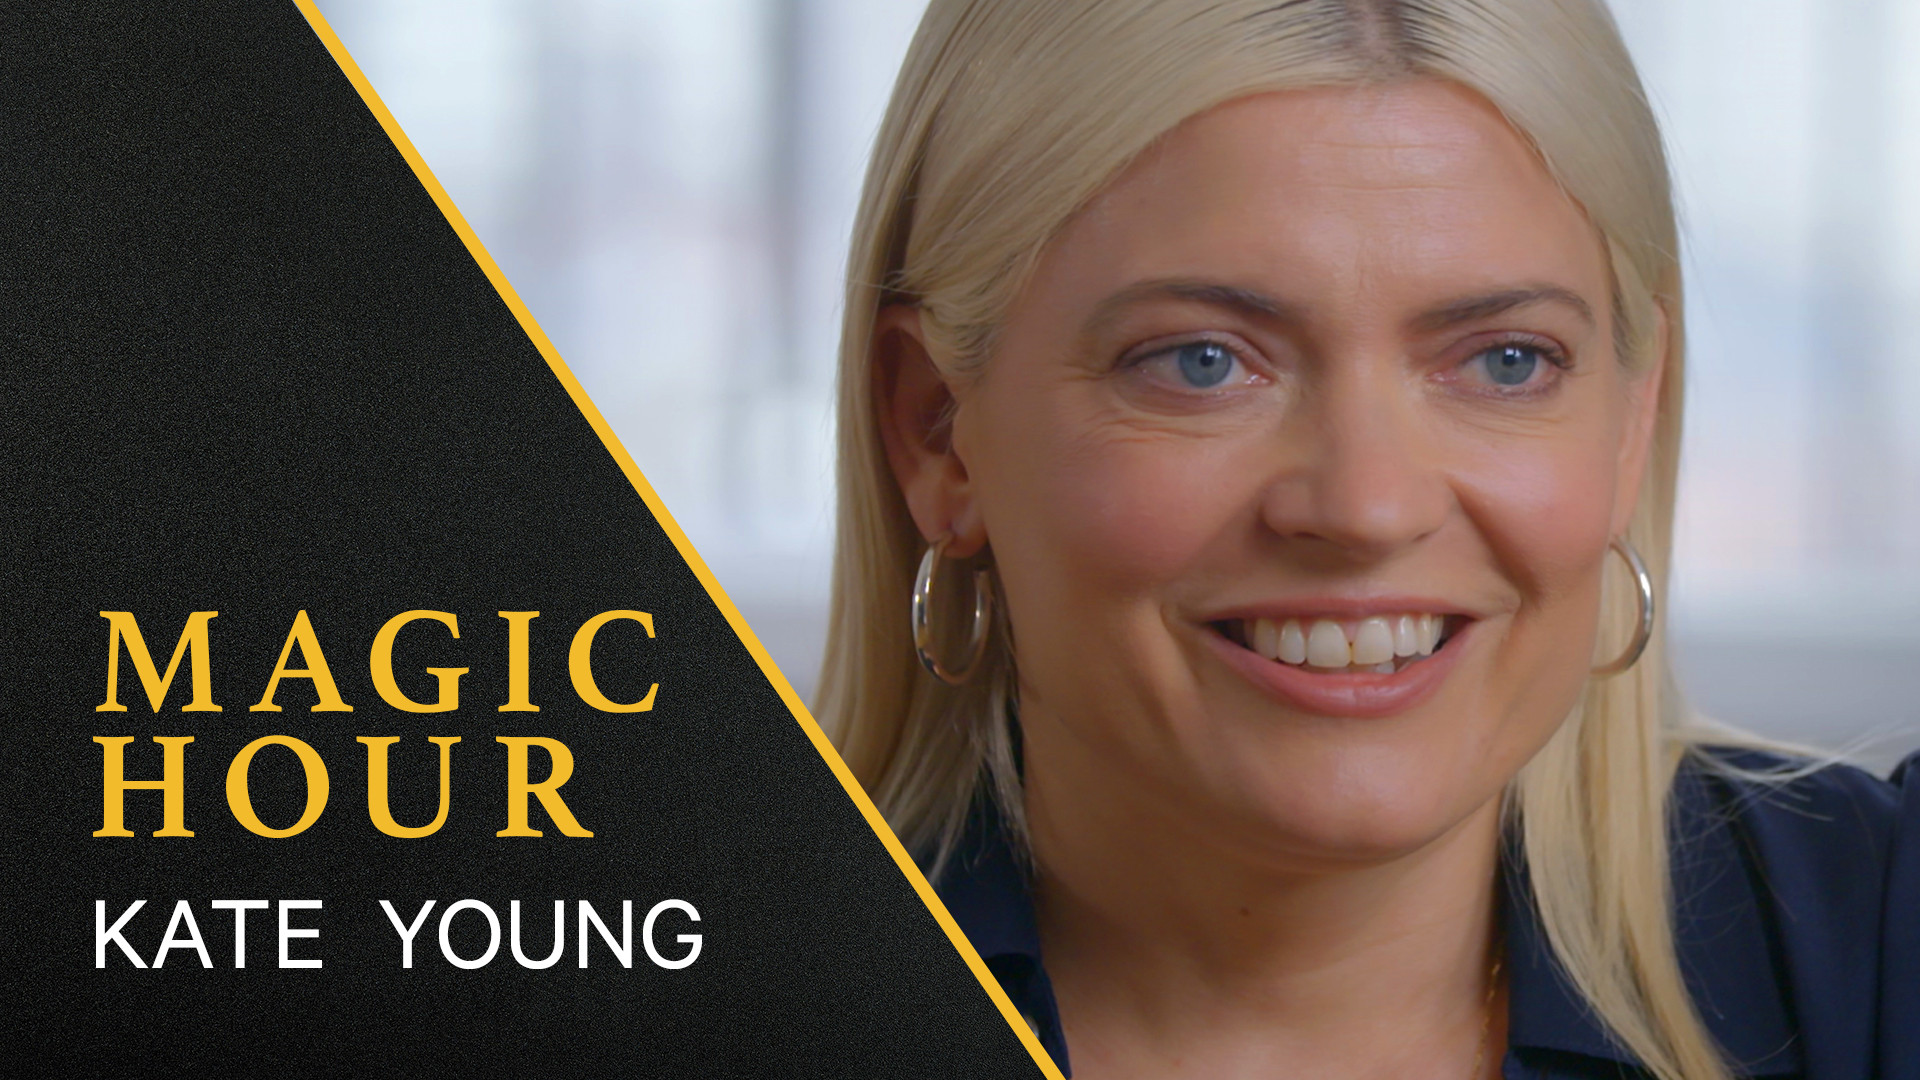 Kate Young, Power Stylist to Sophie Turner & Selena Gomez, Talks Met Gala, Vogue | Magic Hour